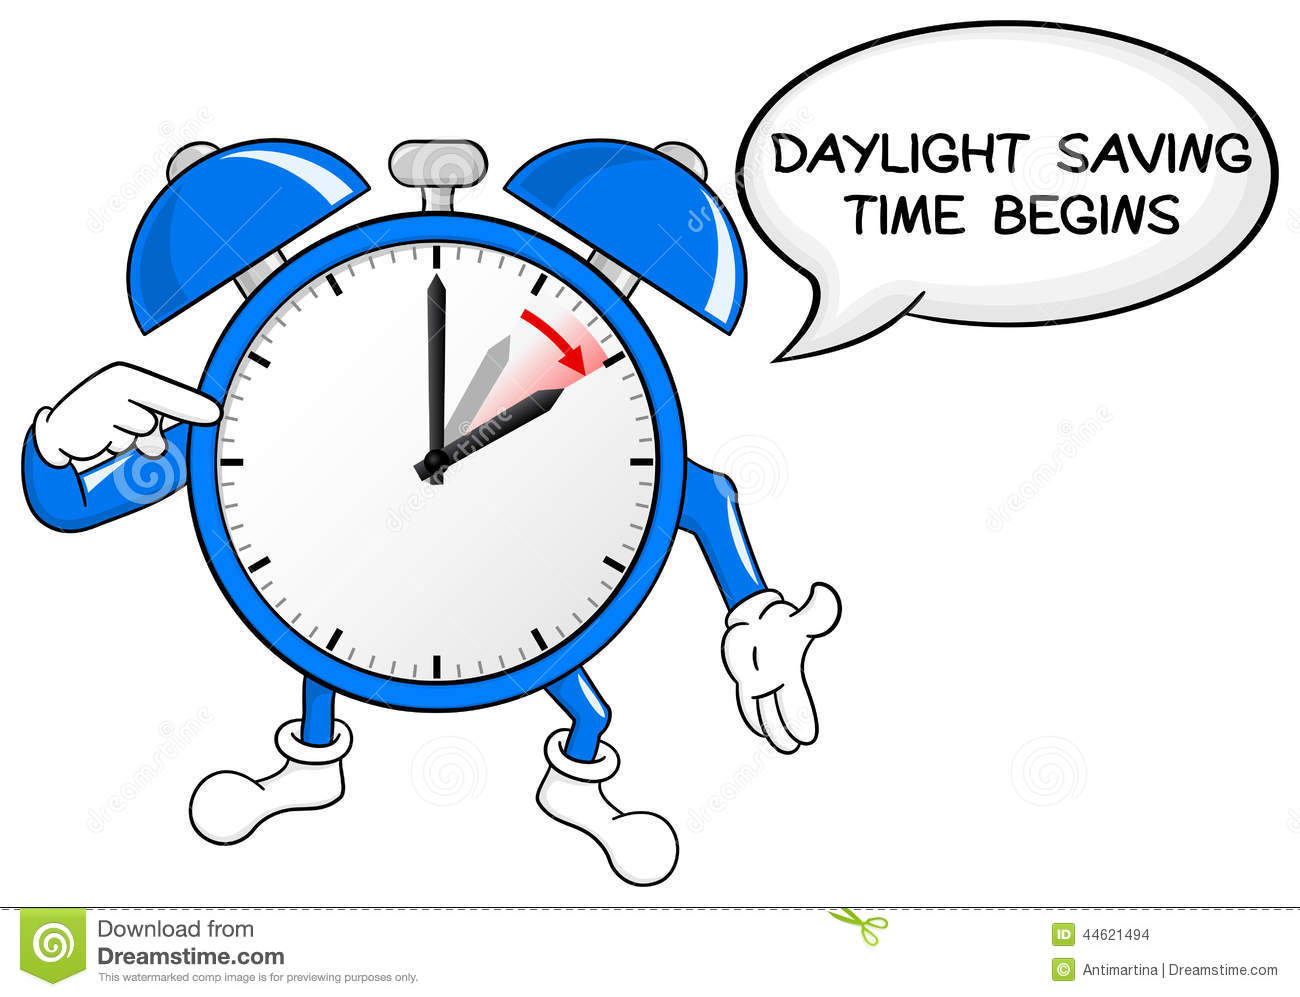 day light saving time Daylight saving time ends on the first sunday in november, when clocks are moved back an hour at 2 am local daylight time (so they will then read 1 am local standard time) last year, dst began on march 12 and ended on nov 5.